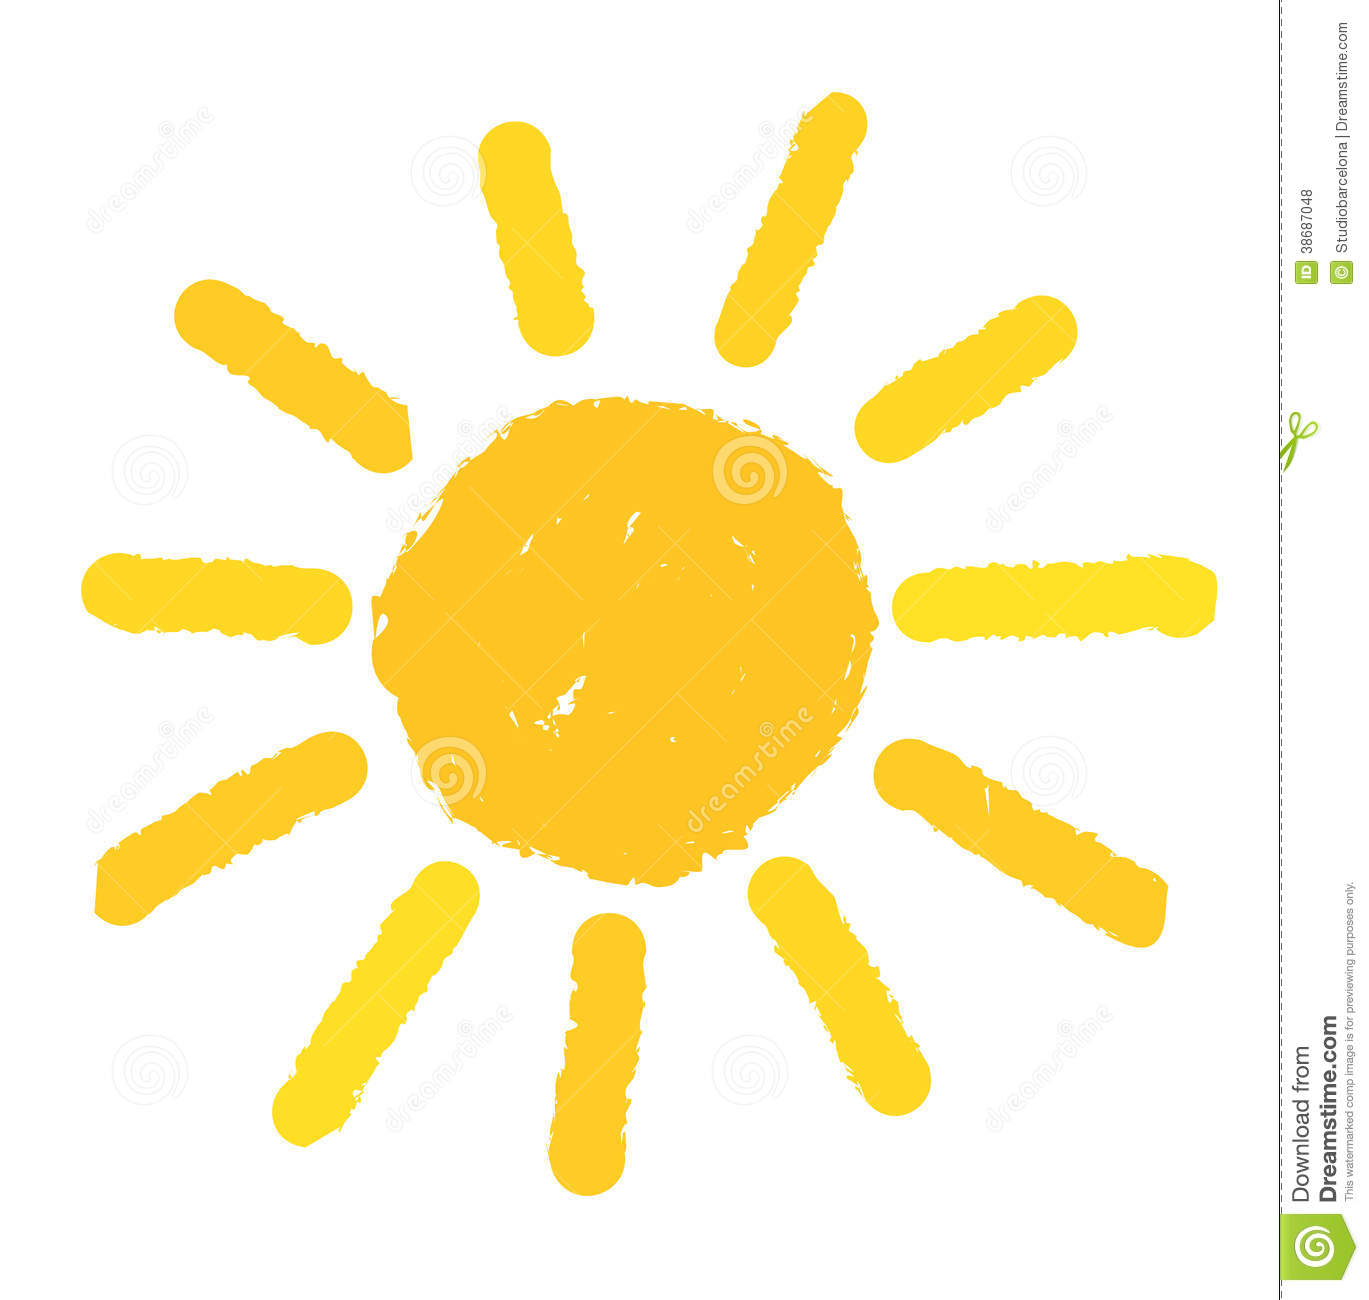 Painted Sun Illustration Royalty Free Stock Photos - Image: 38687048